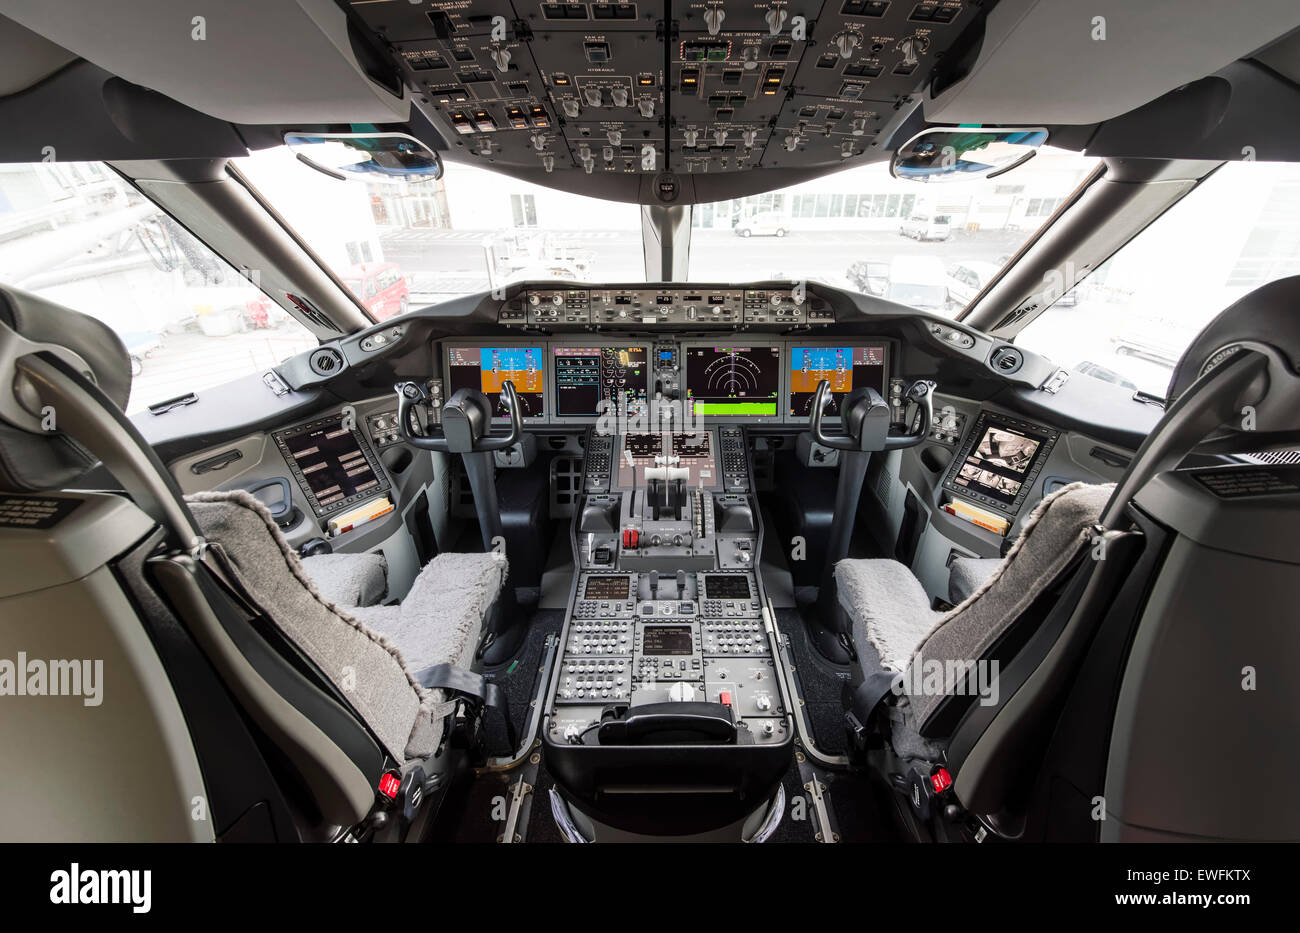 Cockpit Of A Boeing 787 9 Dreamliner Of The Airline ANA, Munich Airport,